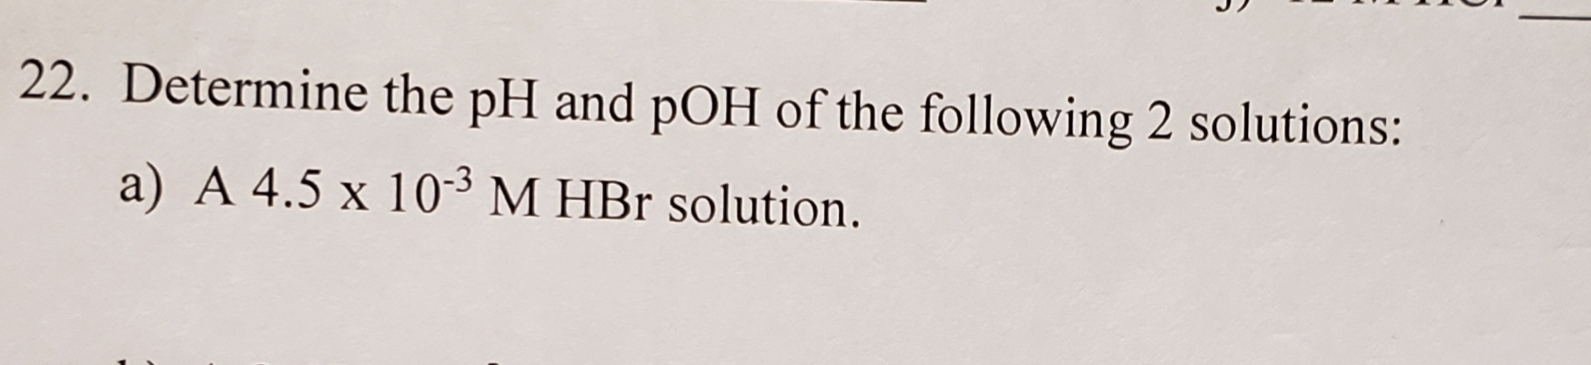 22. Determine the pH and pOH of the following 2 solutions: a) A 4.5 x 103 M HBr solution.